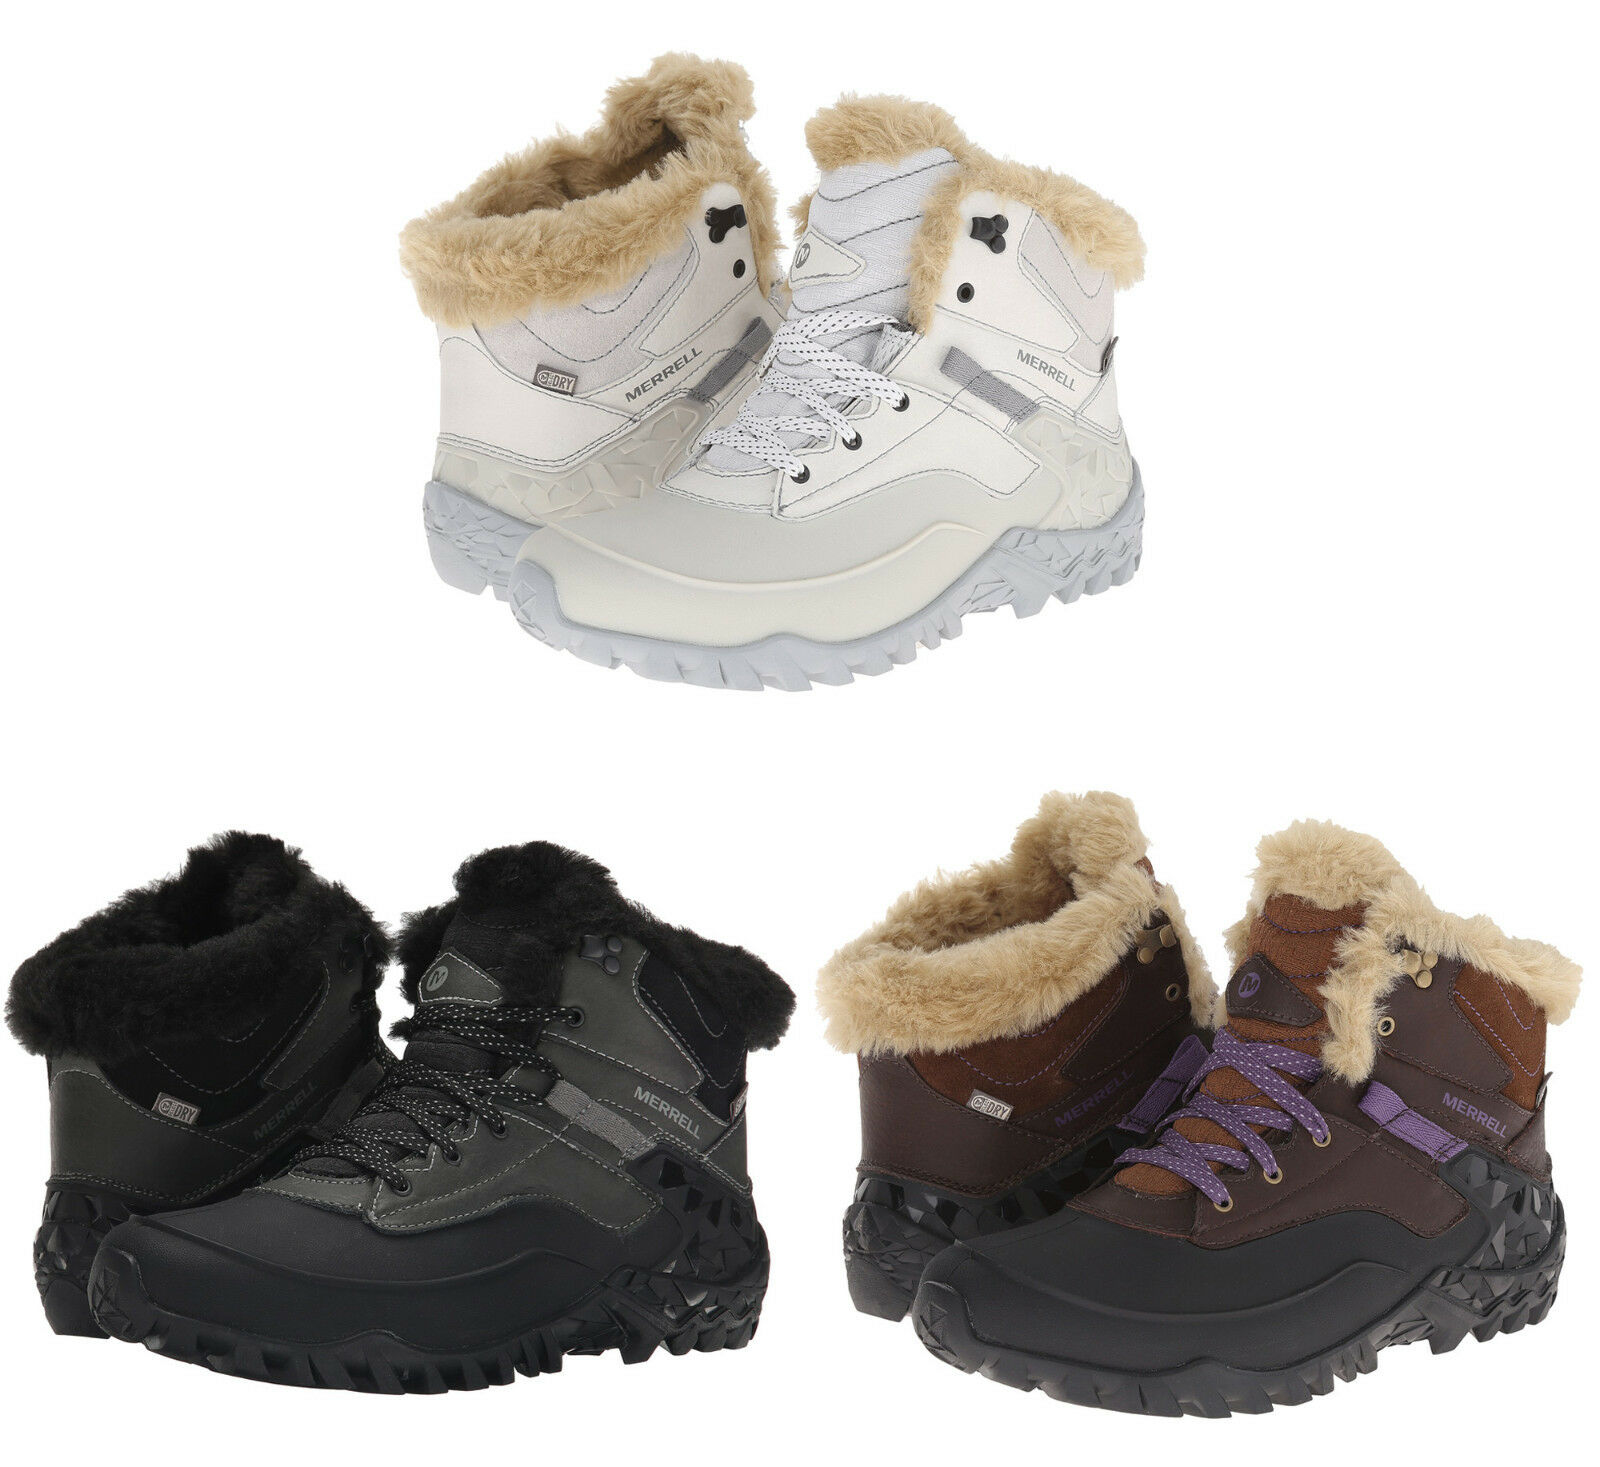 Merrell donna Fluorecein Shell 6 Lace Up Waterproof Winter Snow Ankle stivali